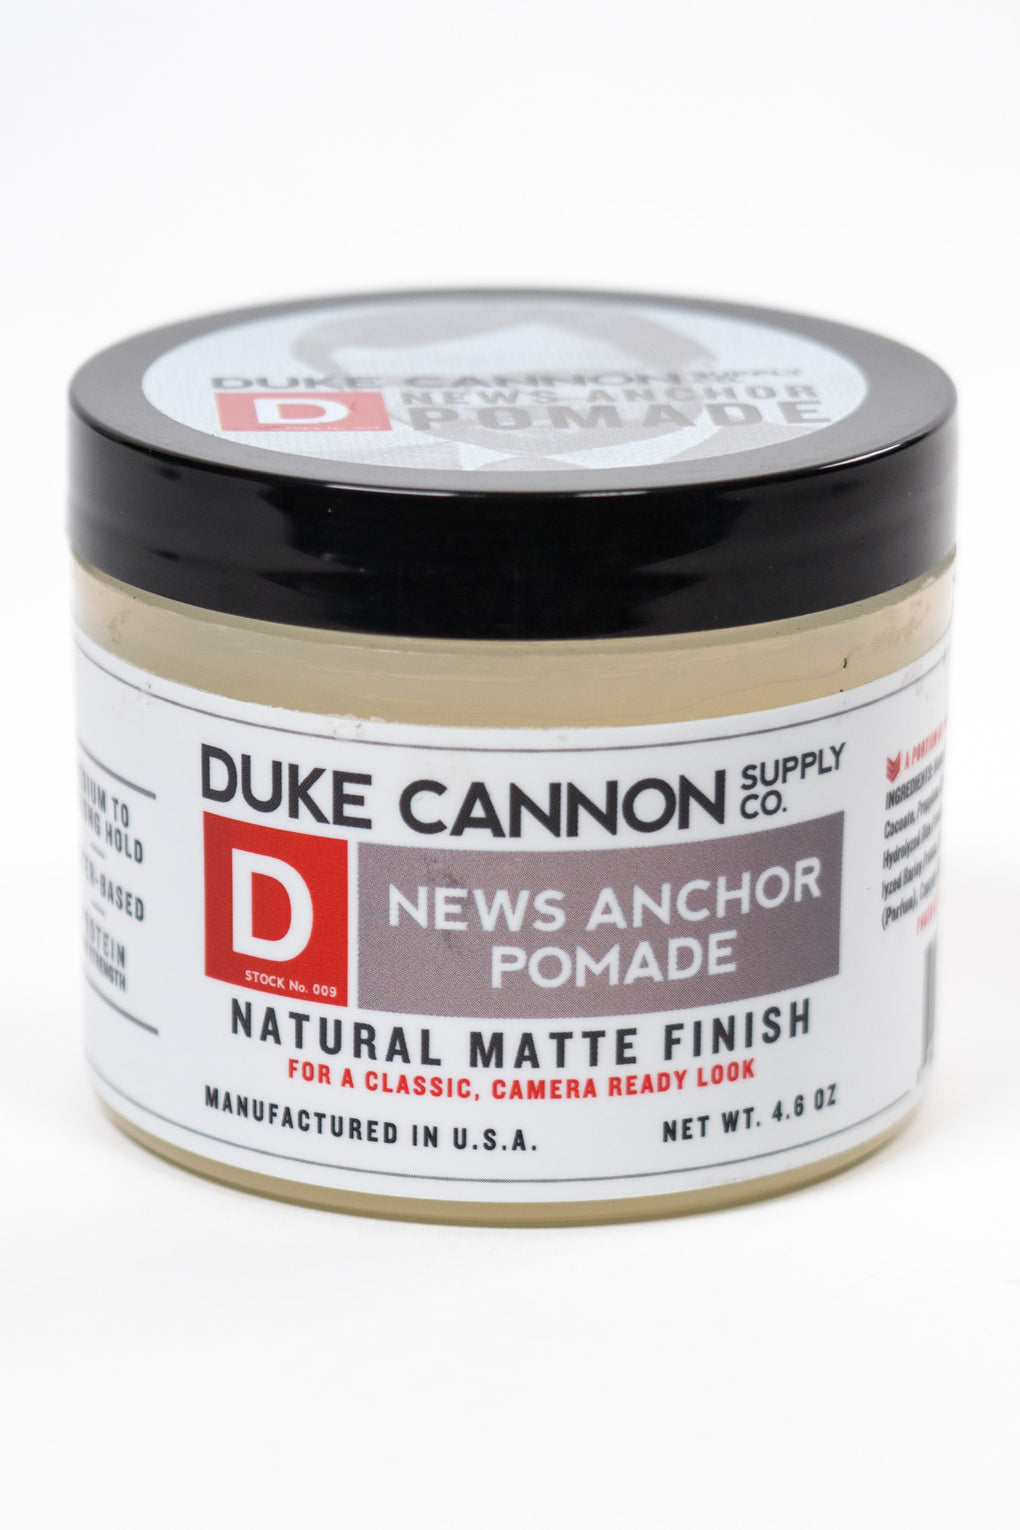 Duke Cannon News Anchor Pomade at Consigliere